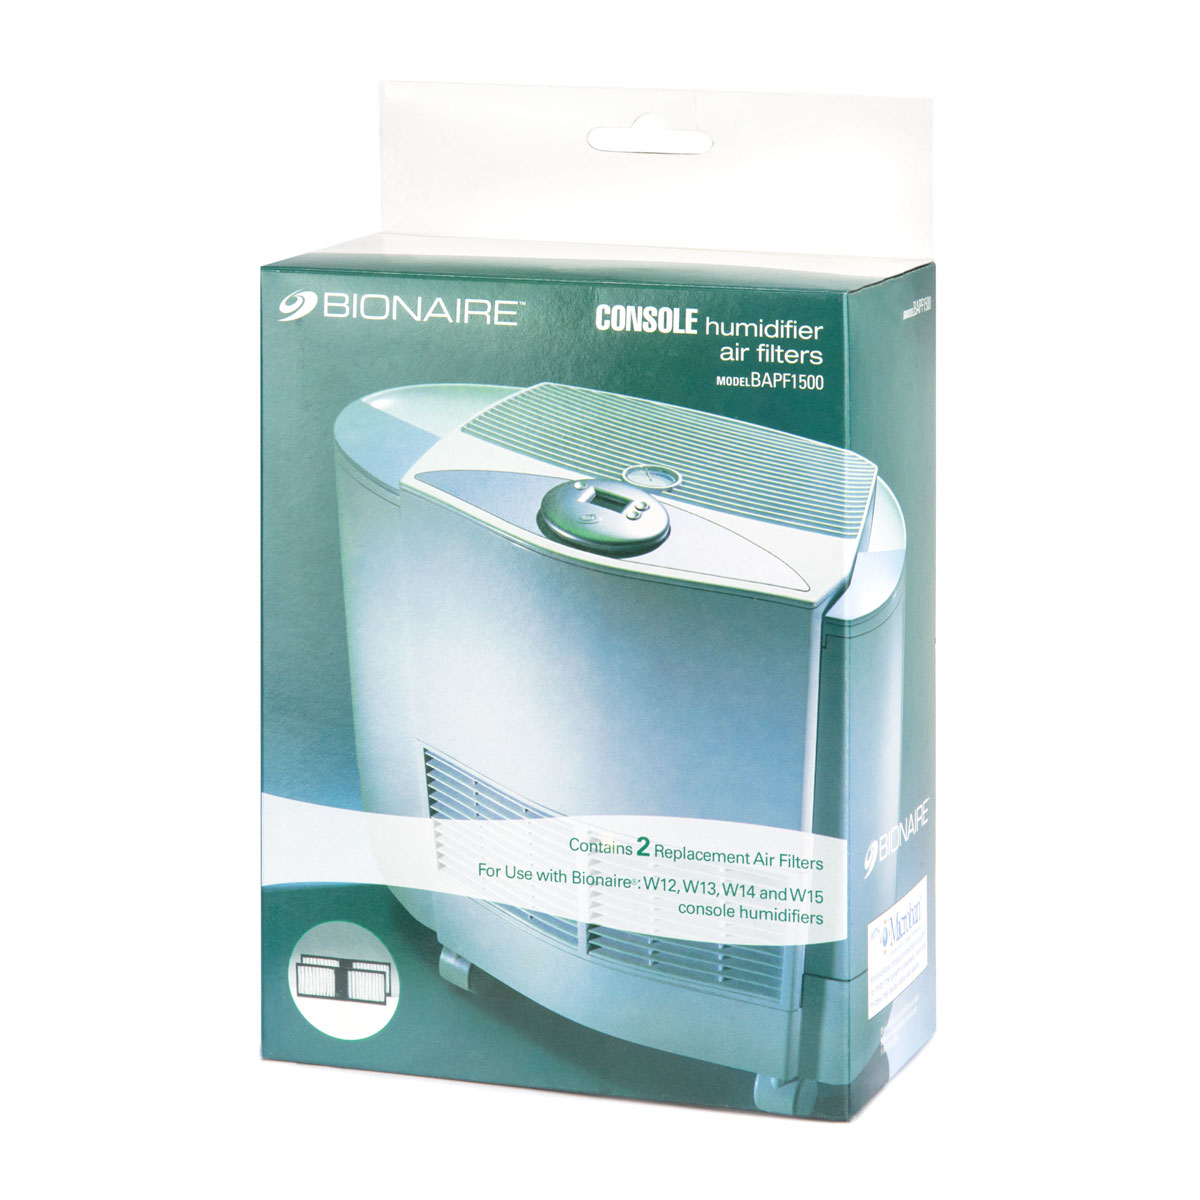 Bionaire® Console Humidifier Air Filter BAPF1500 UC Bionaire  #467385